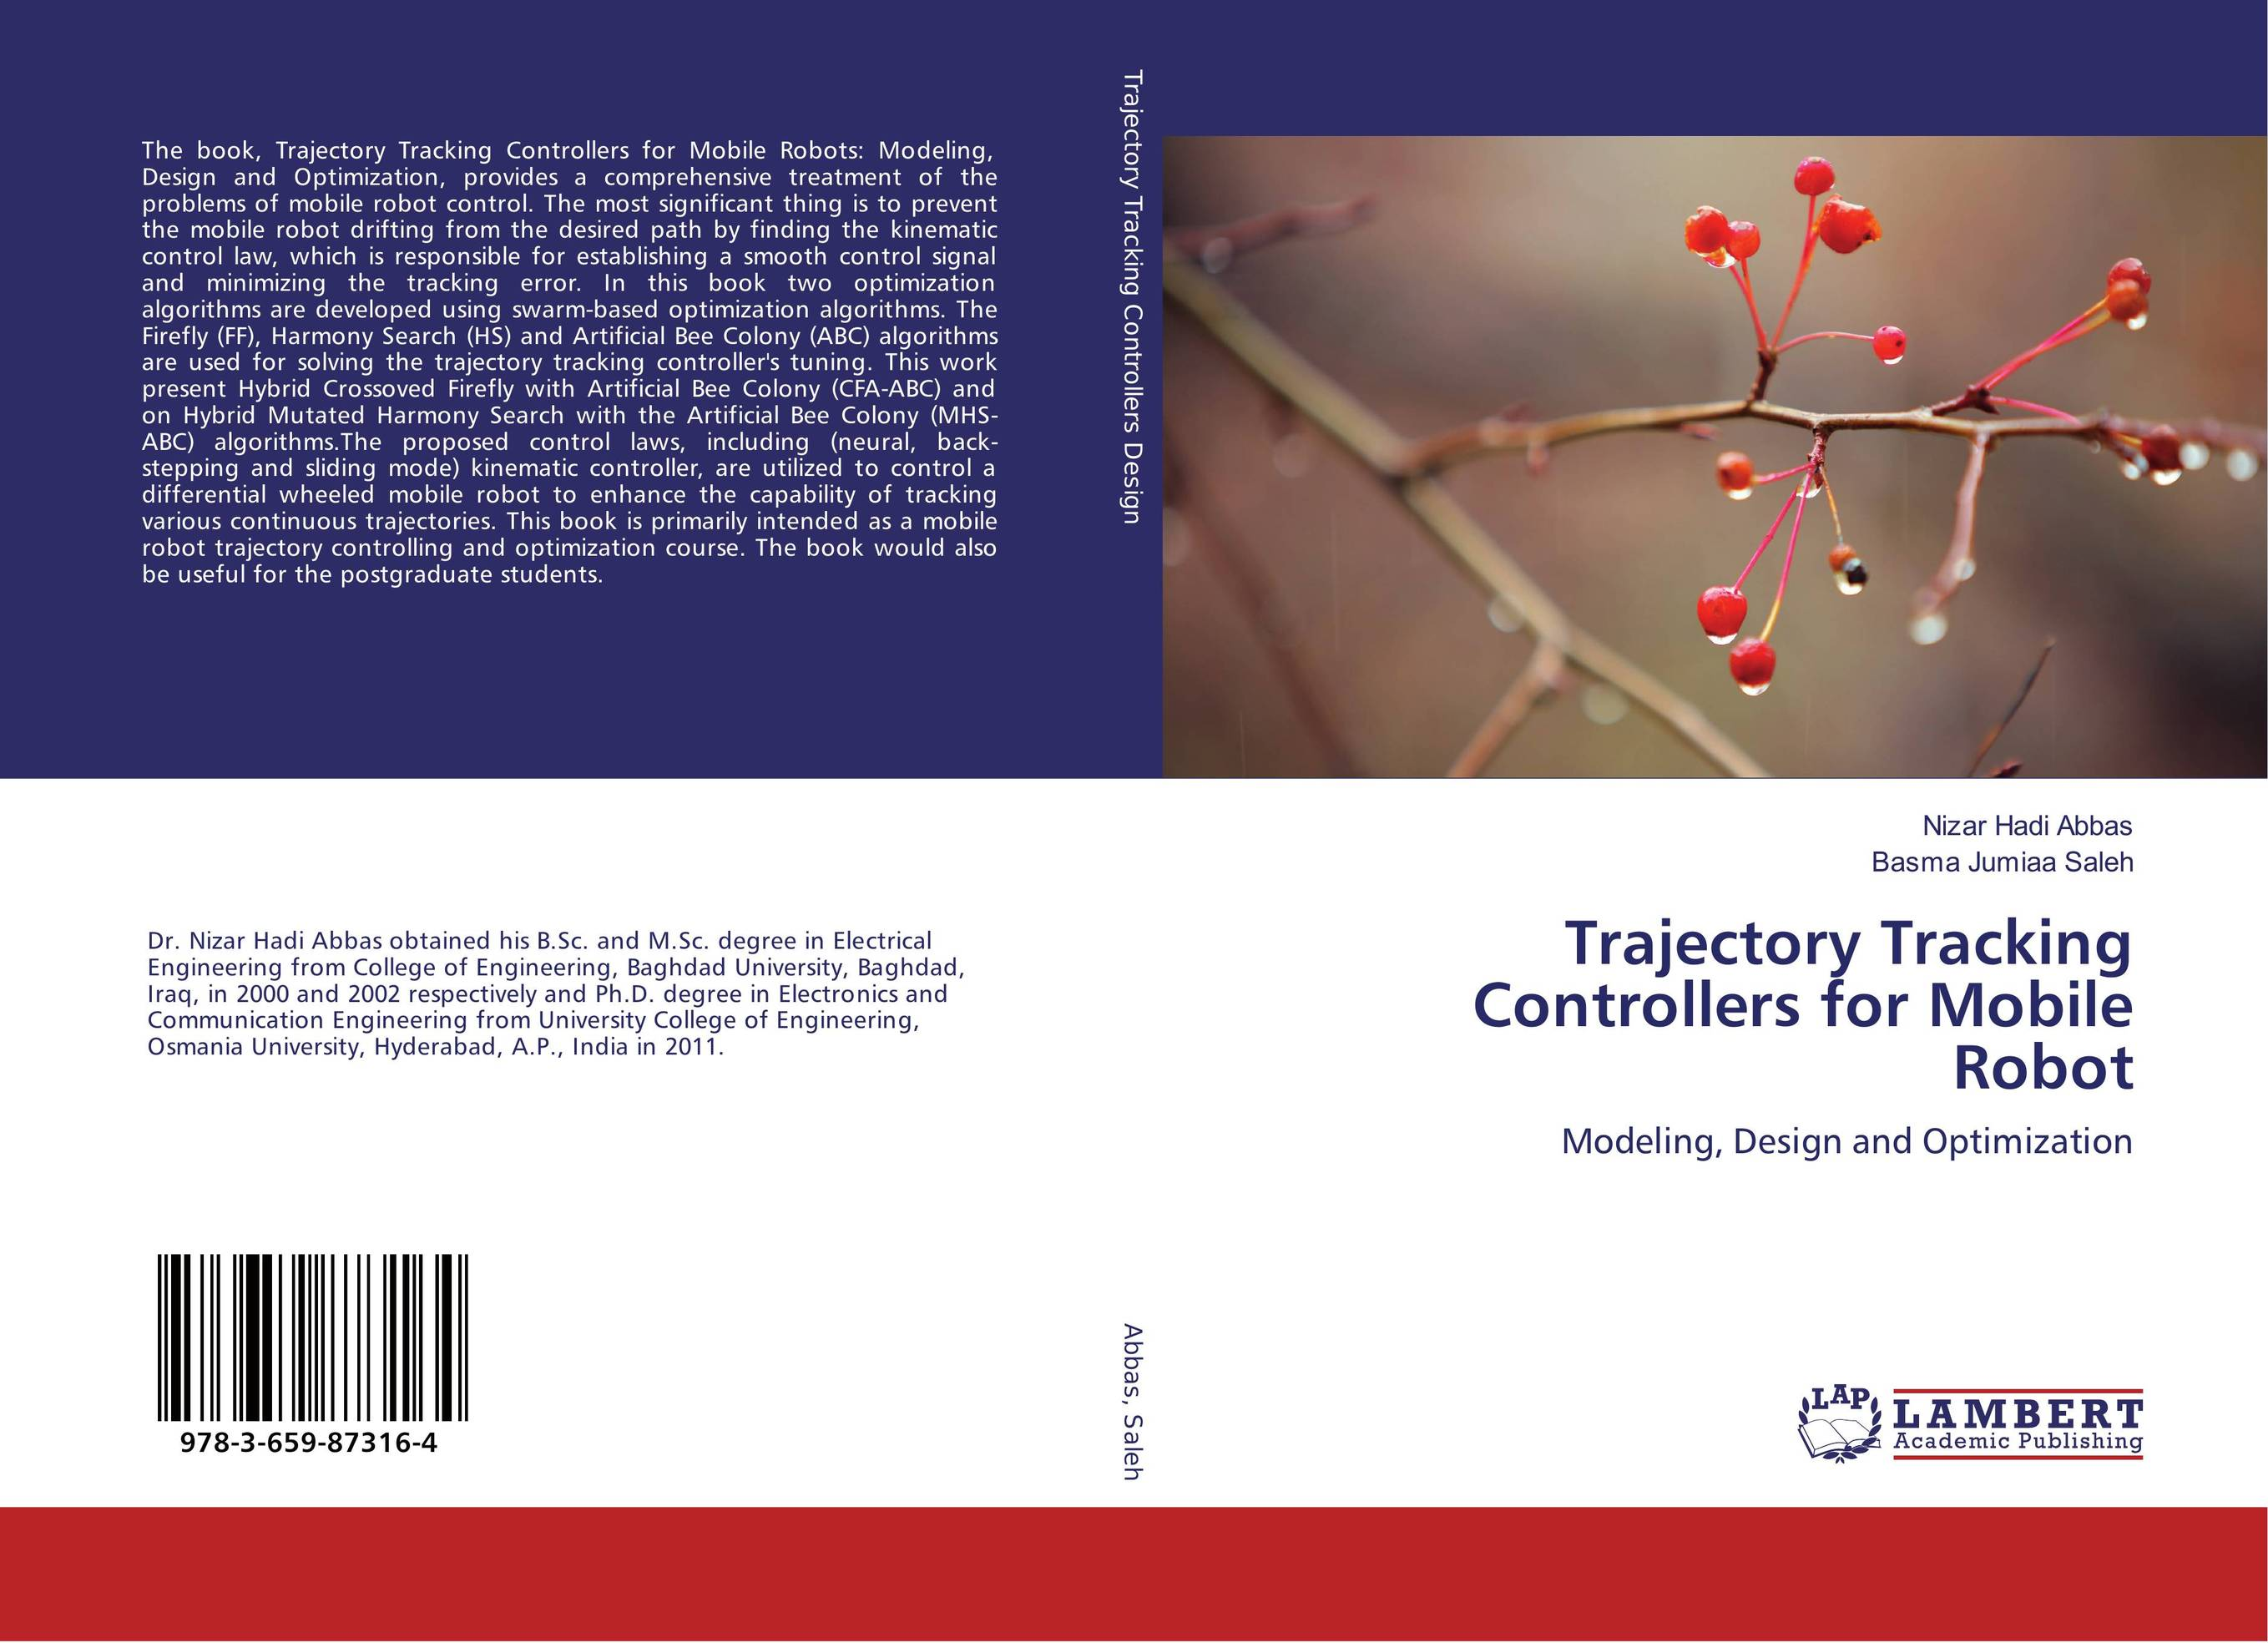 Trajectory Tracking Controllers for Mobile Robot mpso and mga approaches for mobile robot navigation